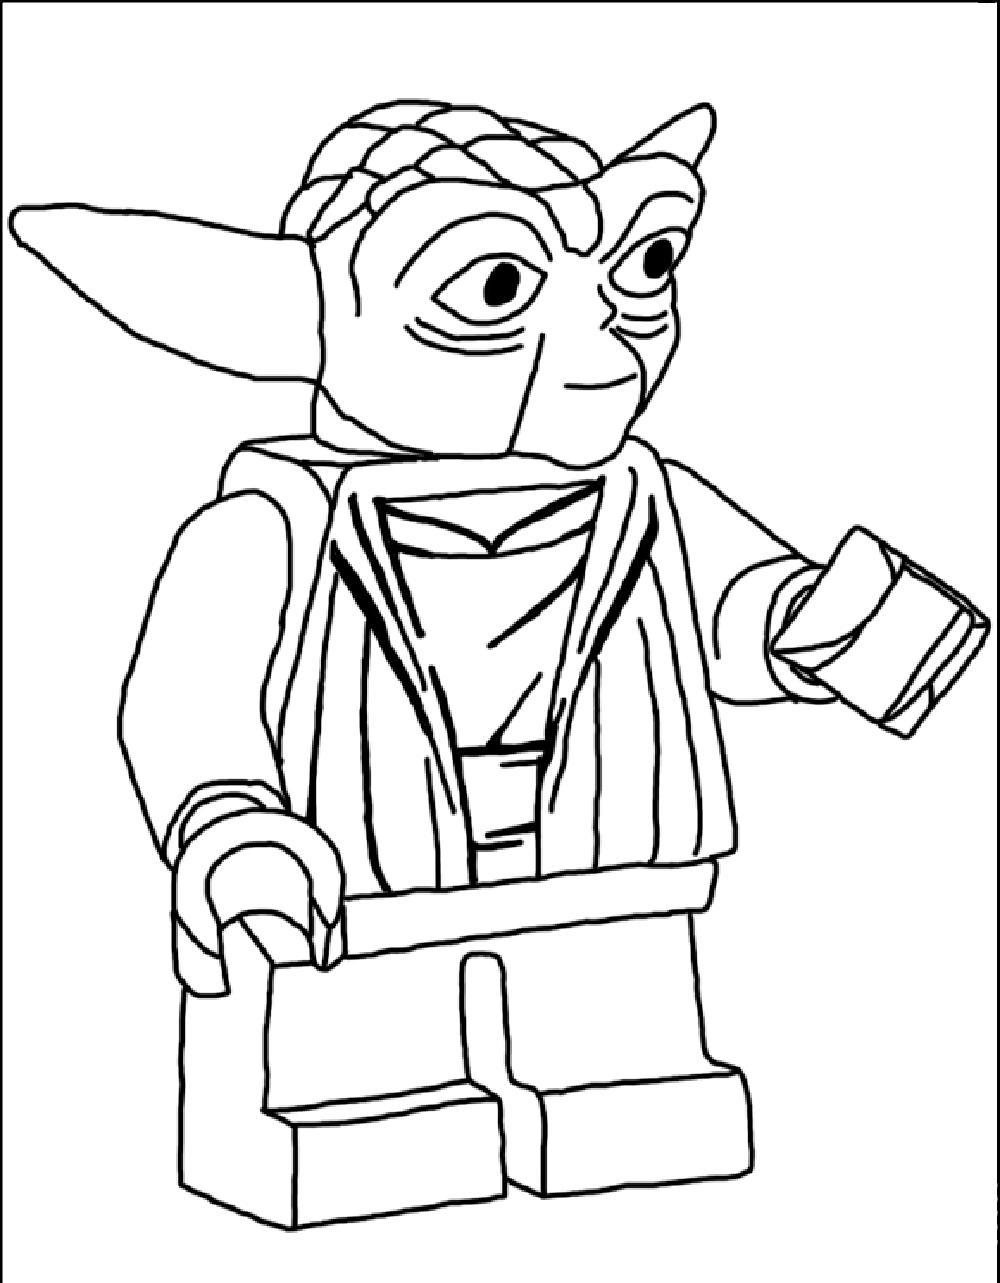 lego color sheet free printable lego coloring pages for kids lego color sheet 1 1